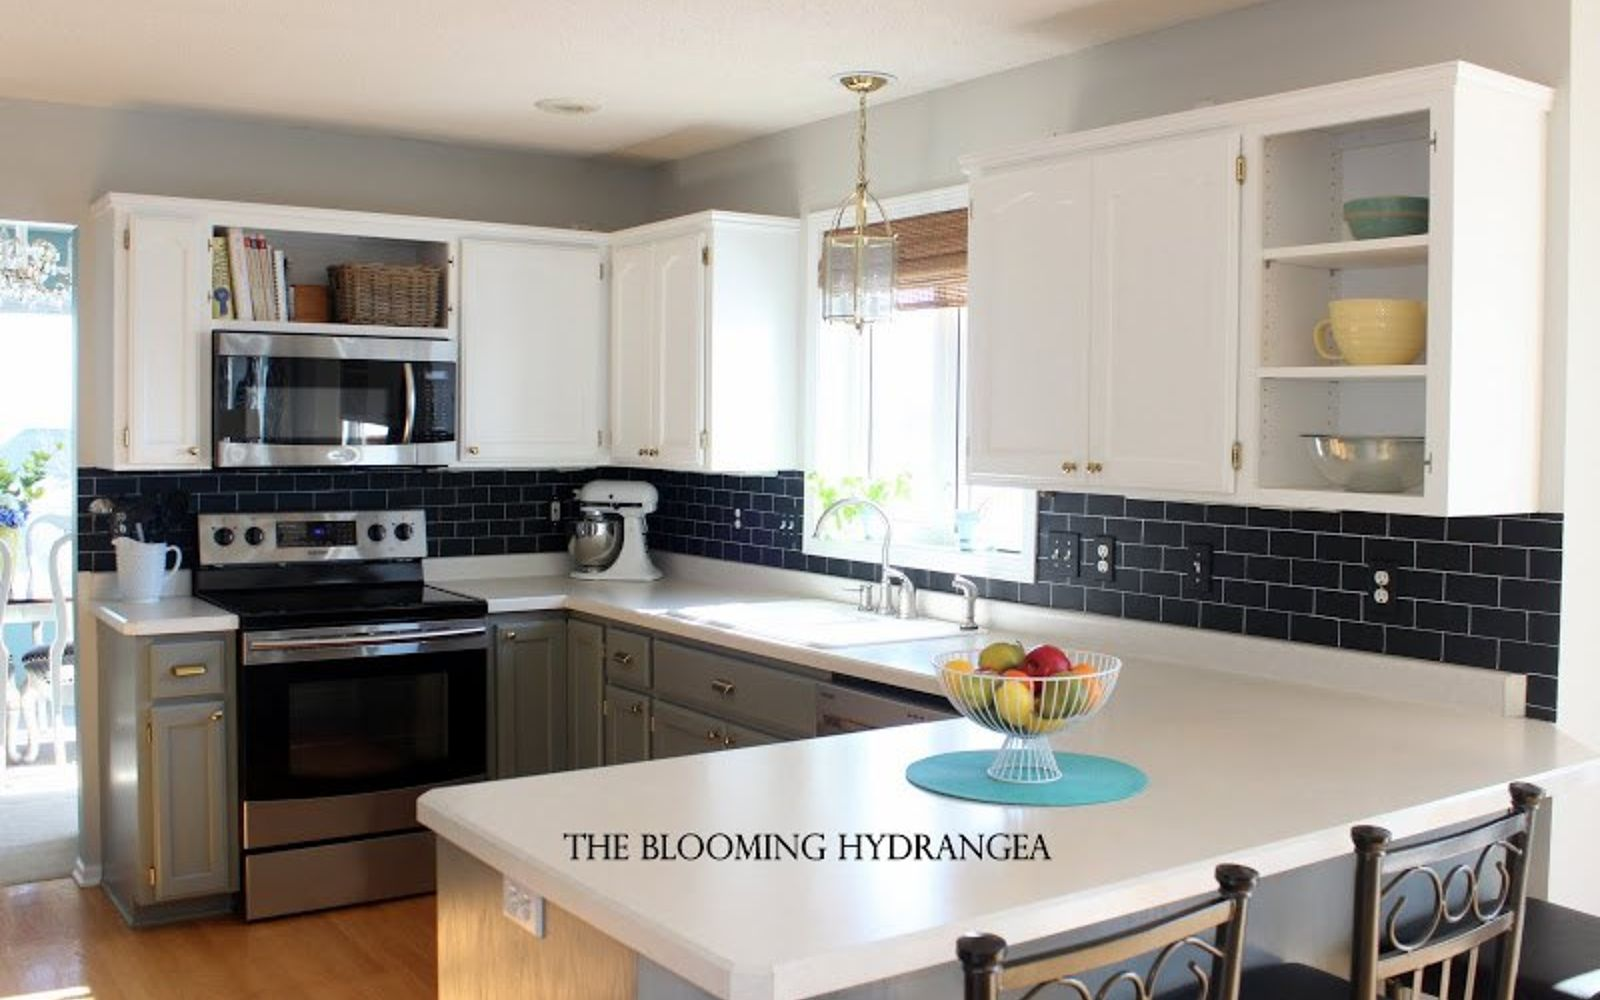 Backsplash Paint Ideas 13 incredible kitchen backsplash ideas that aren't tile | hometalk